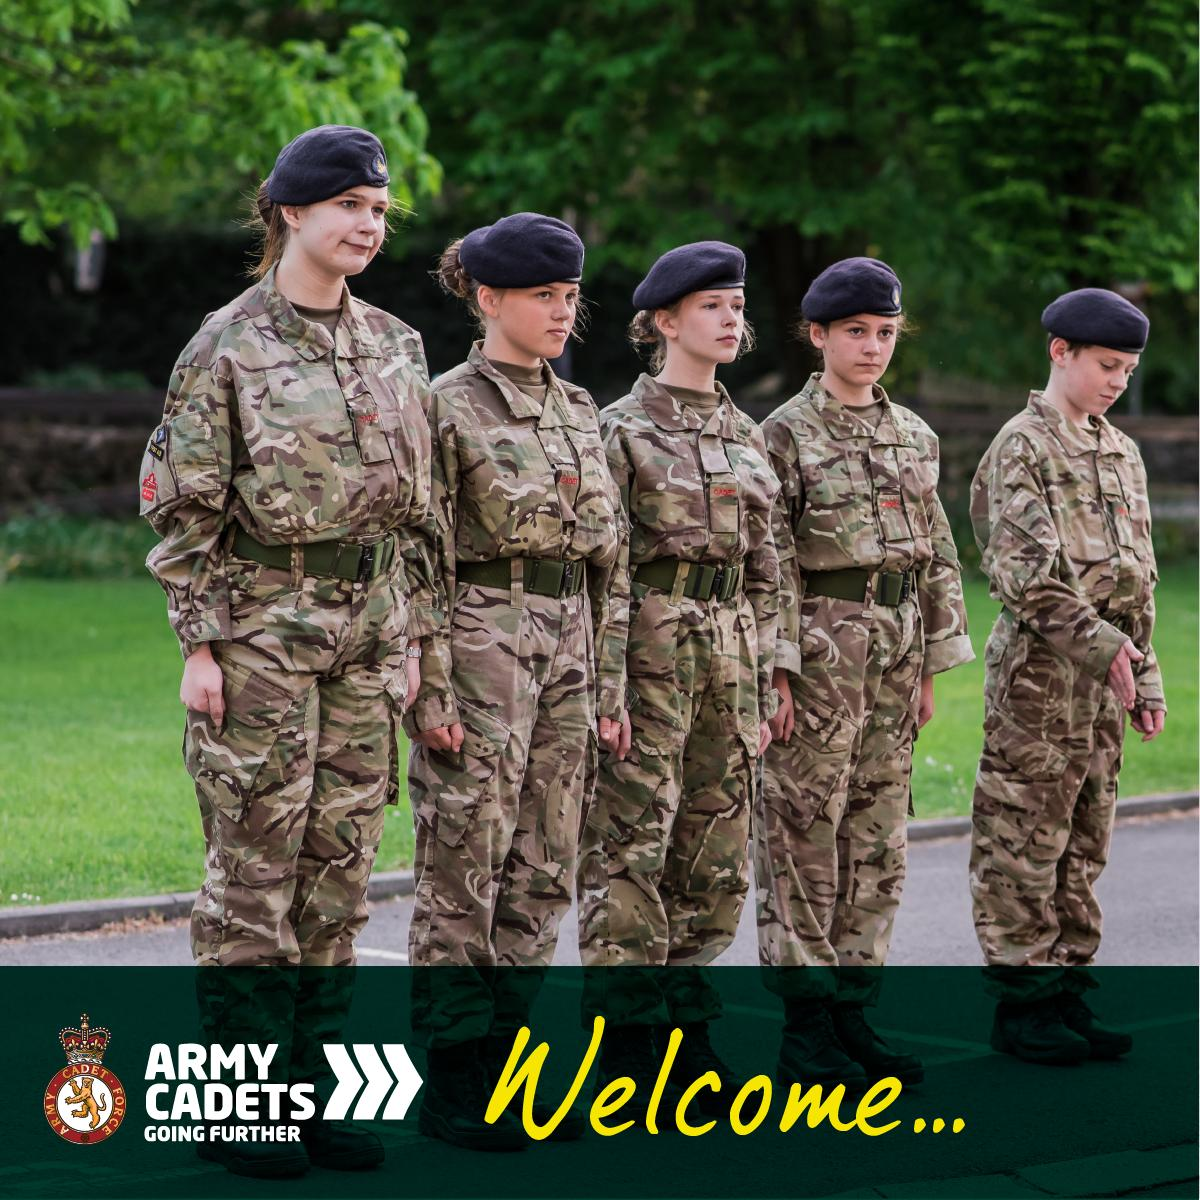 Army Cadet Force (@ArmyCadetsUK) | Twitter